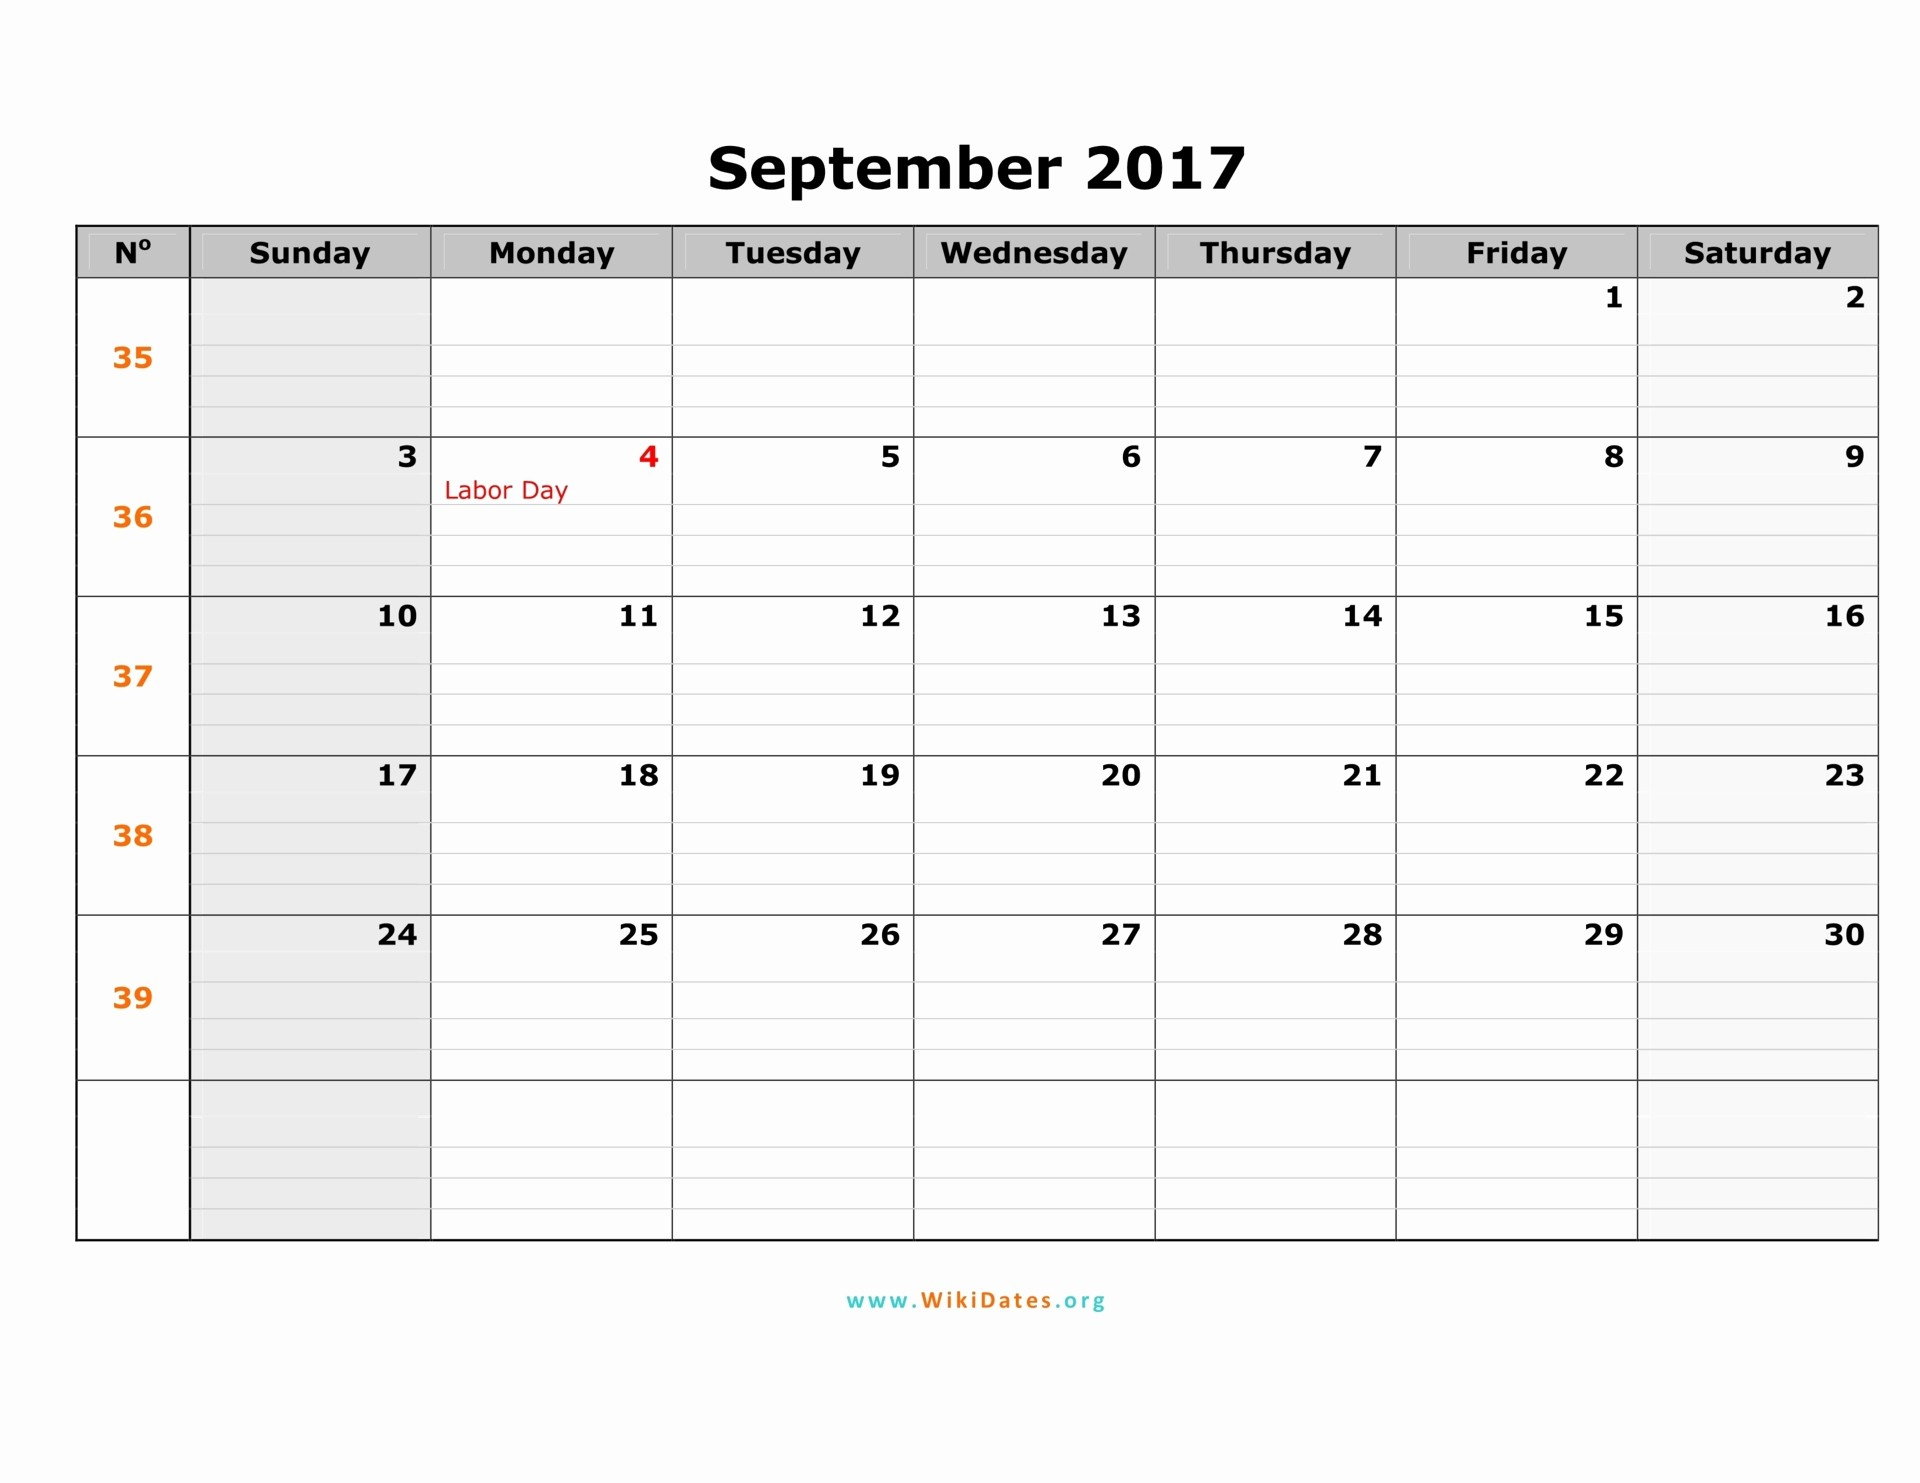 2017 Calendar with Holidays Template Unique September 2017 Calendar with Holidays Uk